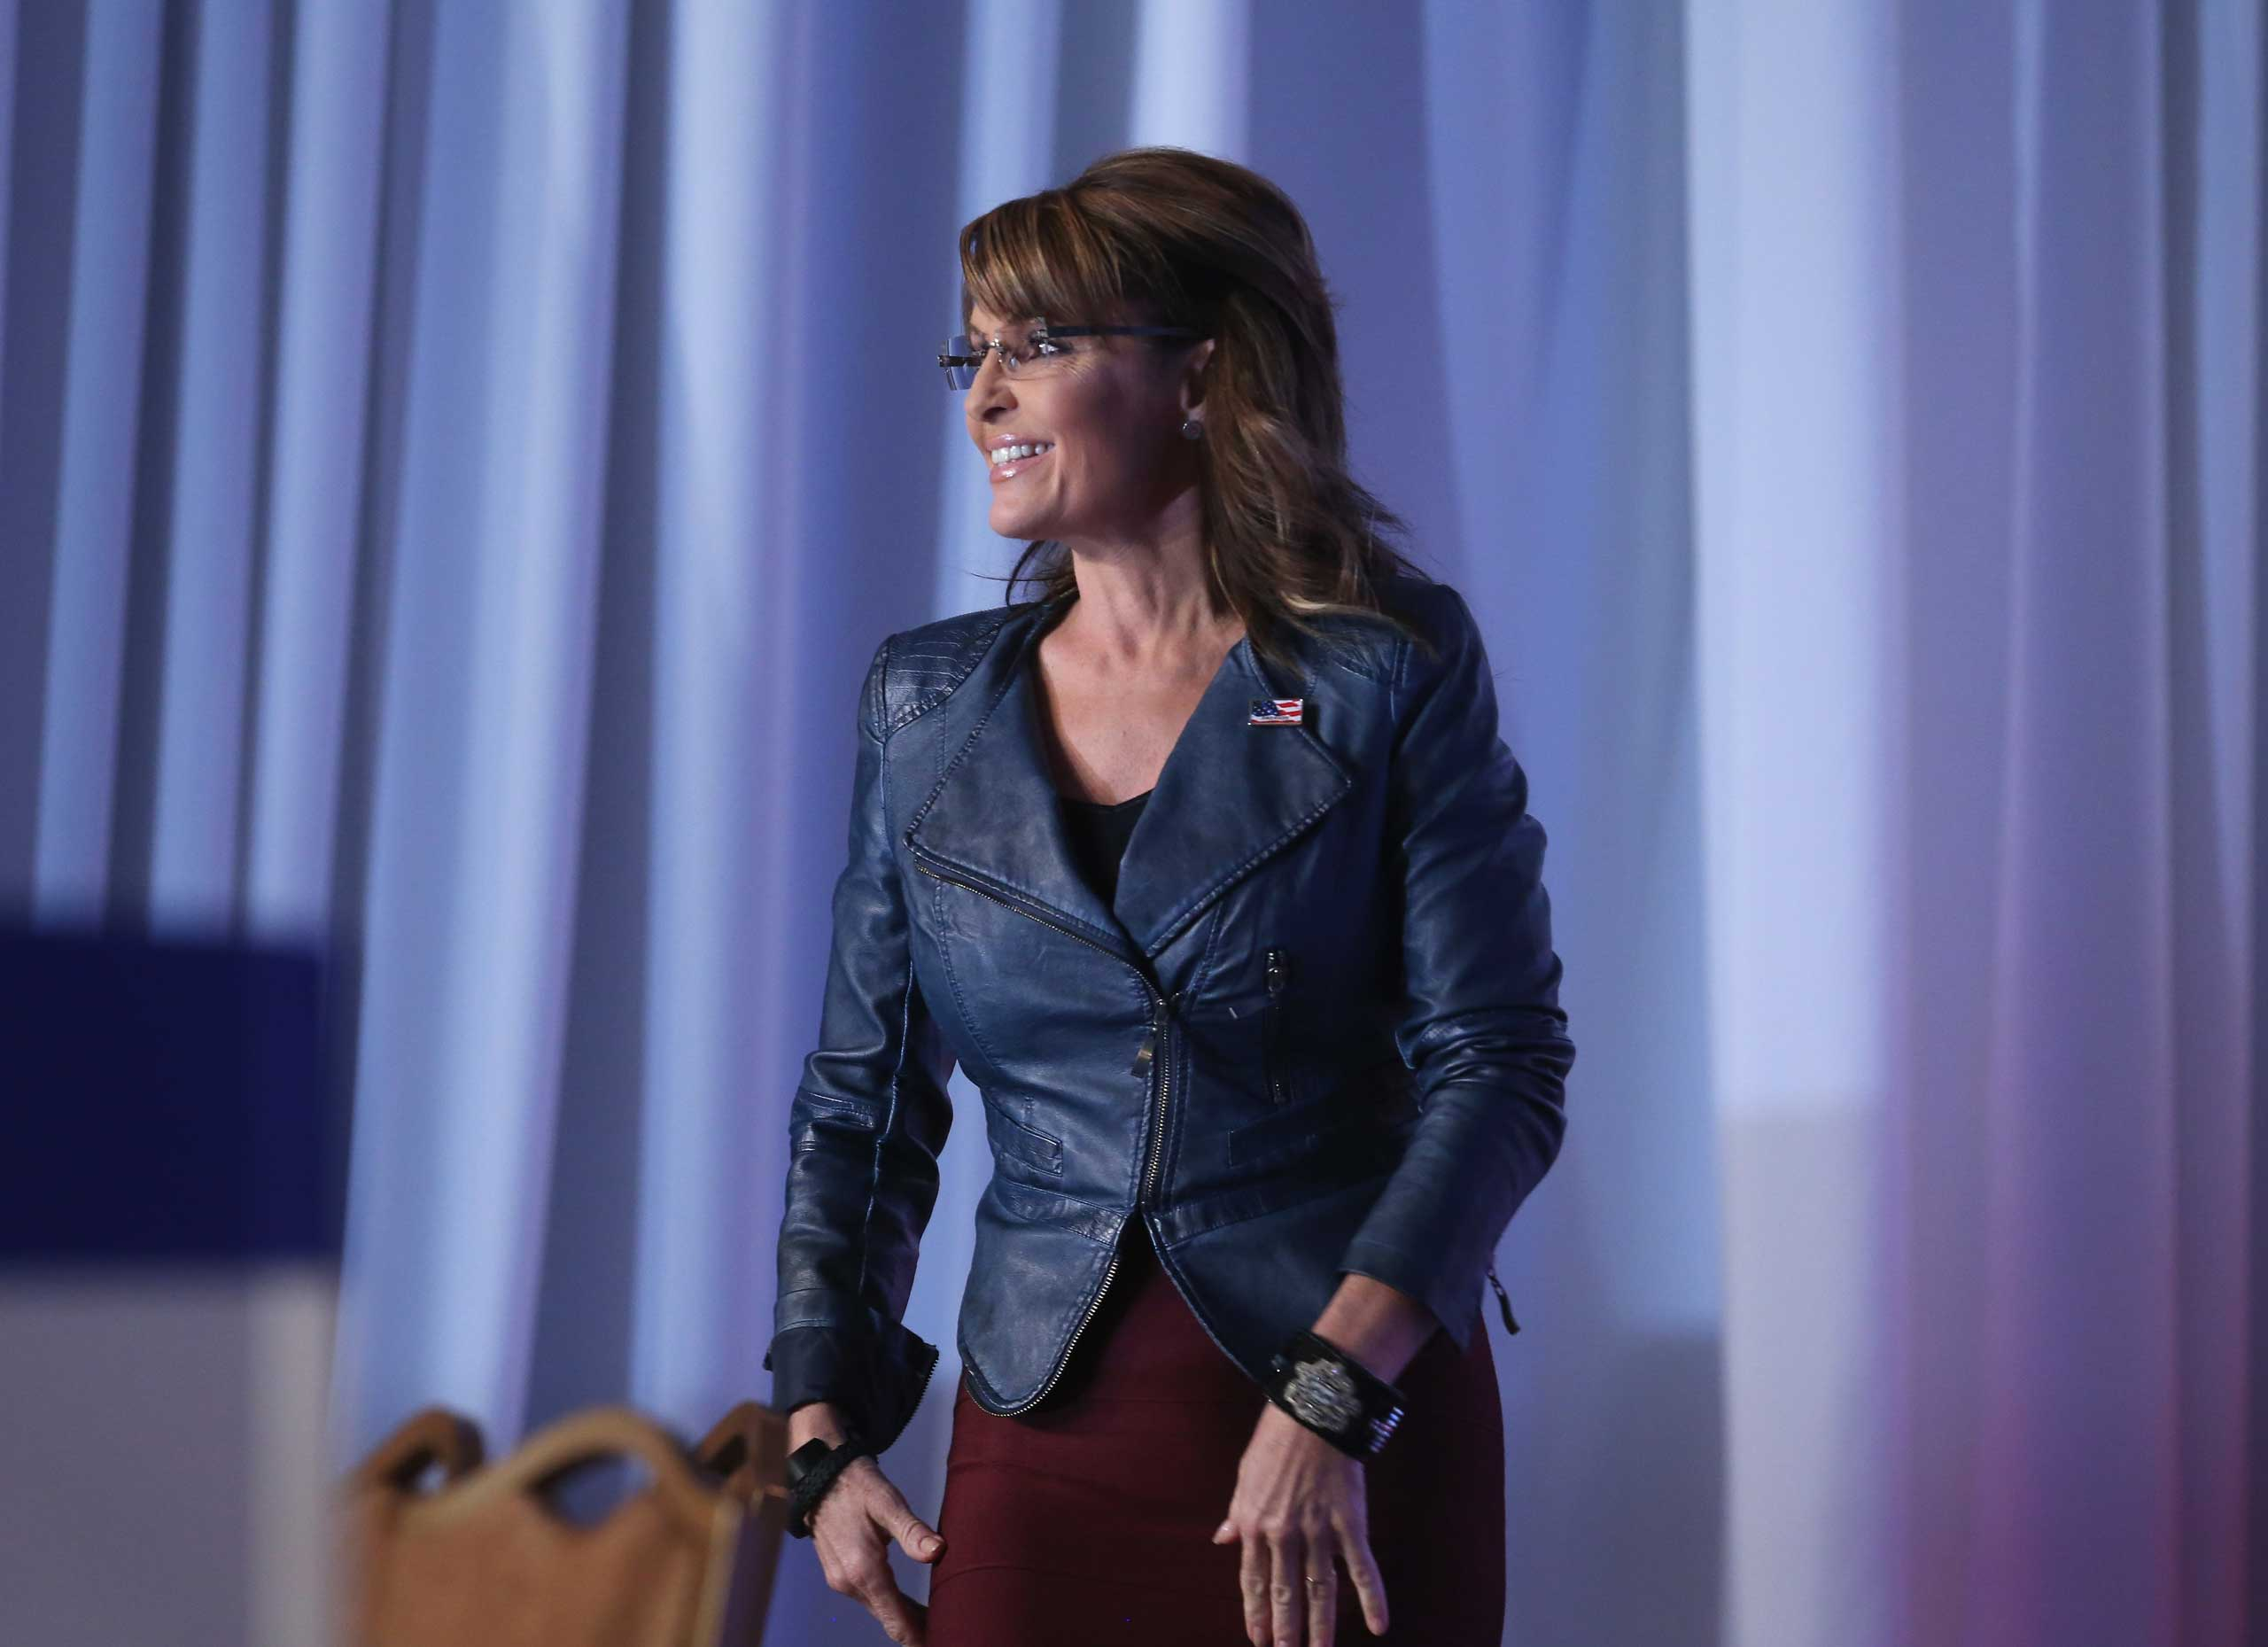 Former Alaska Gov. Sarah Palin (R) walks onstage to speak at the 2014 Values Voter Summit in Washington on Sept. 26, 2014.